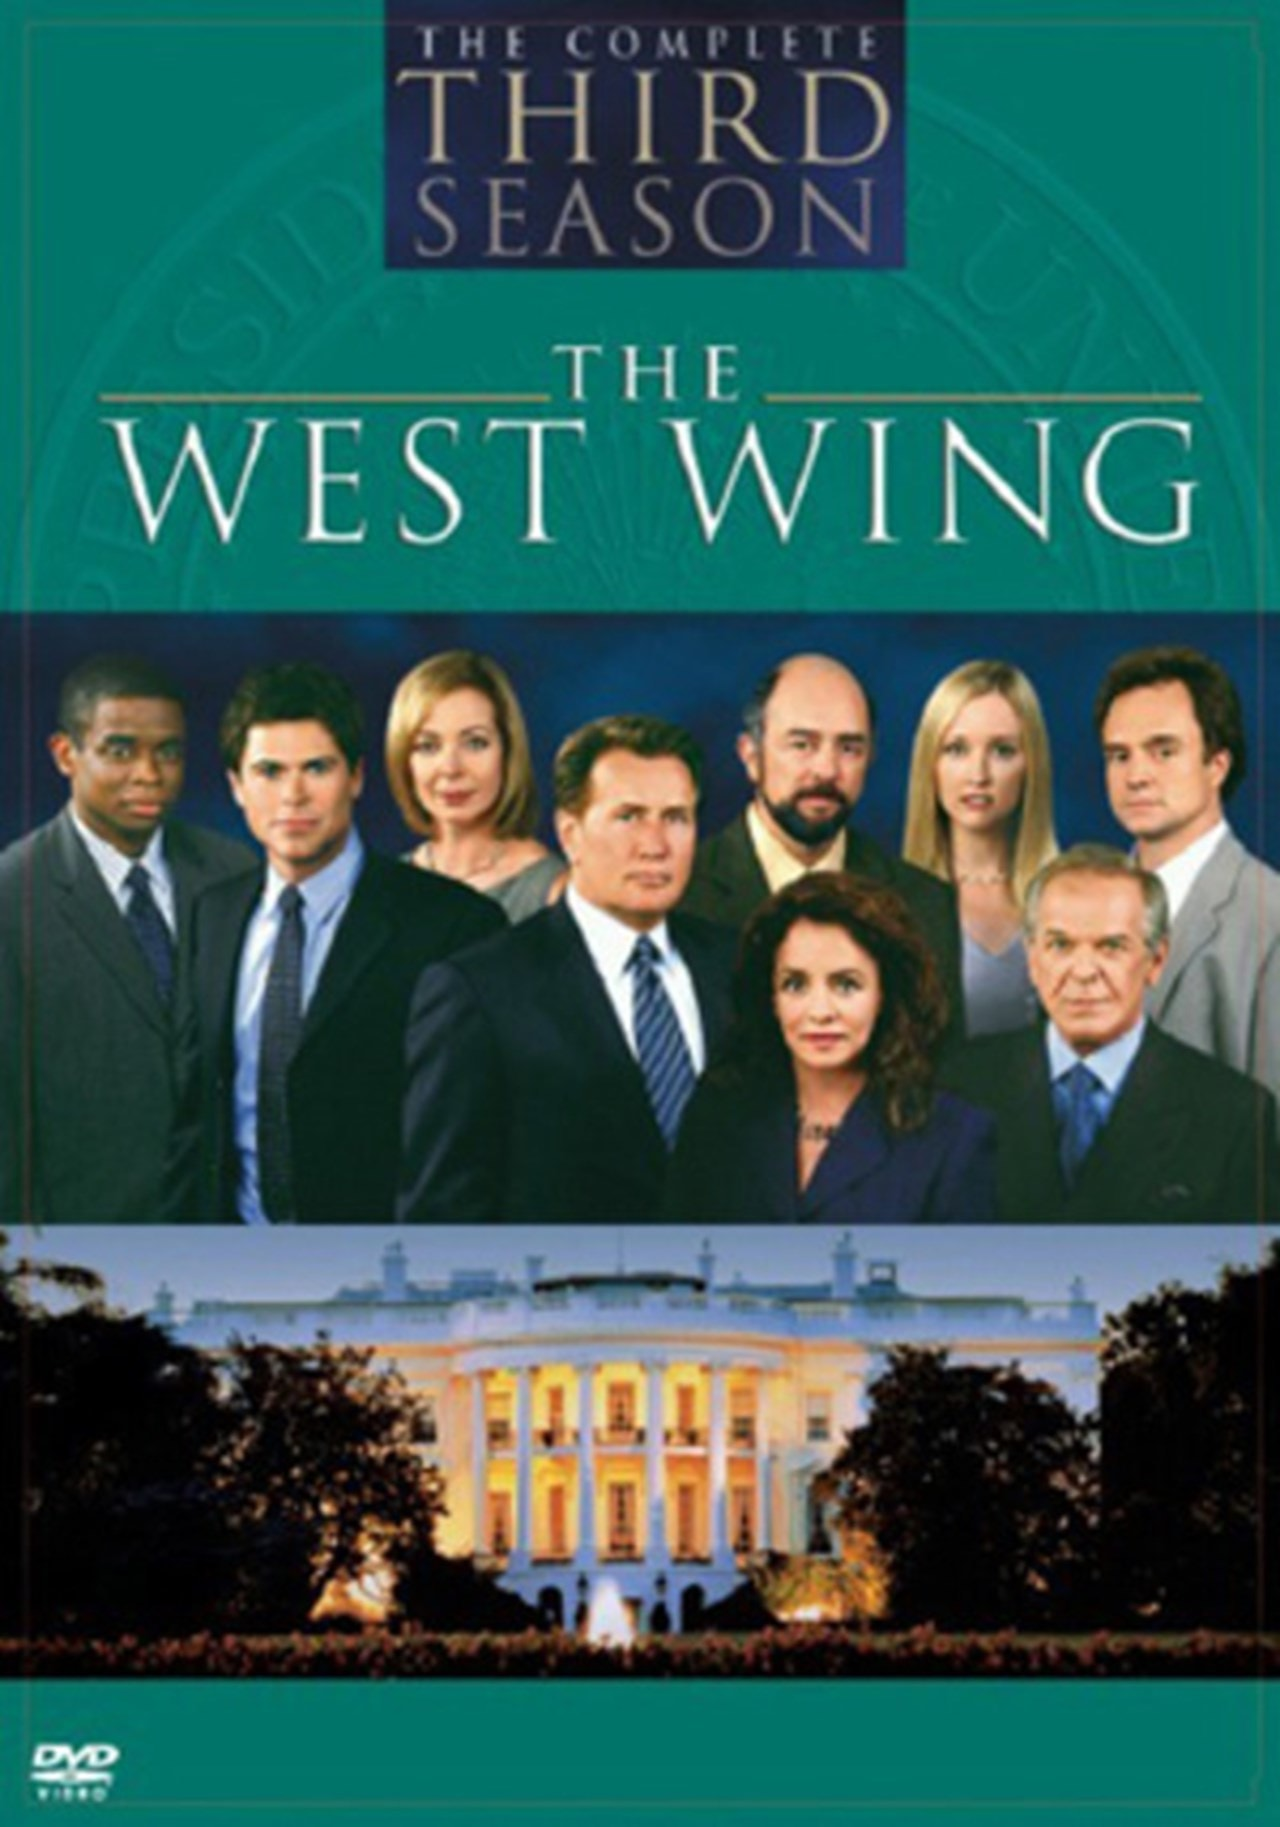 The West Wing: The Complete Third Season - 1